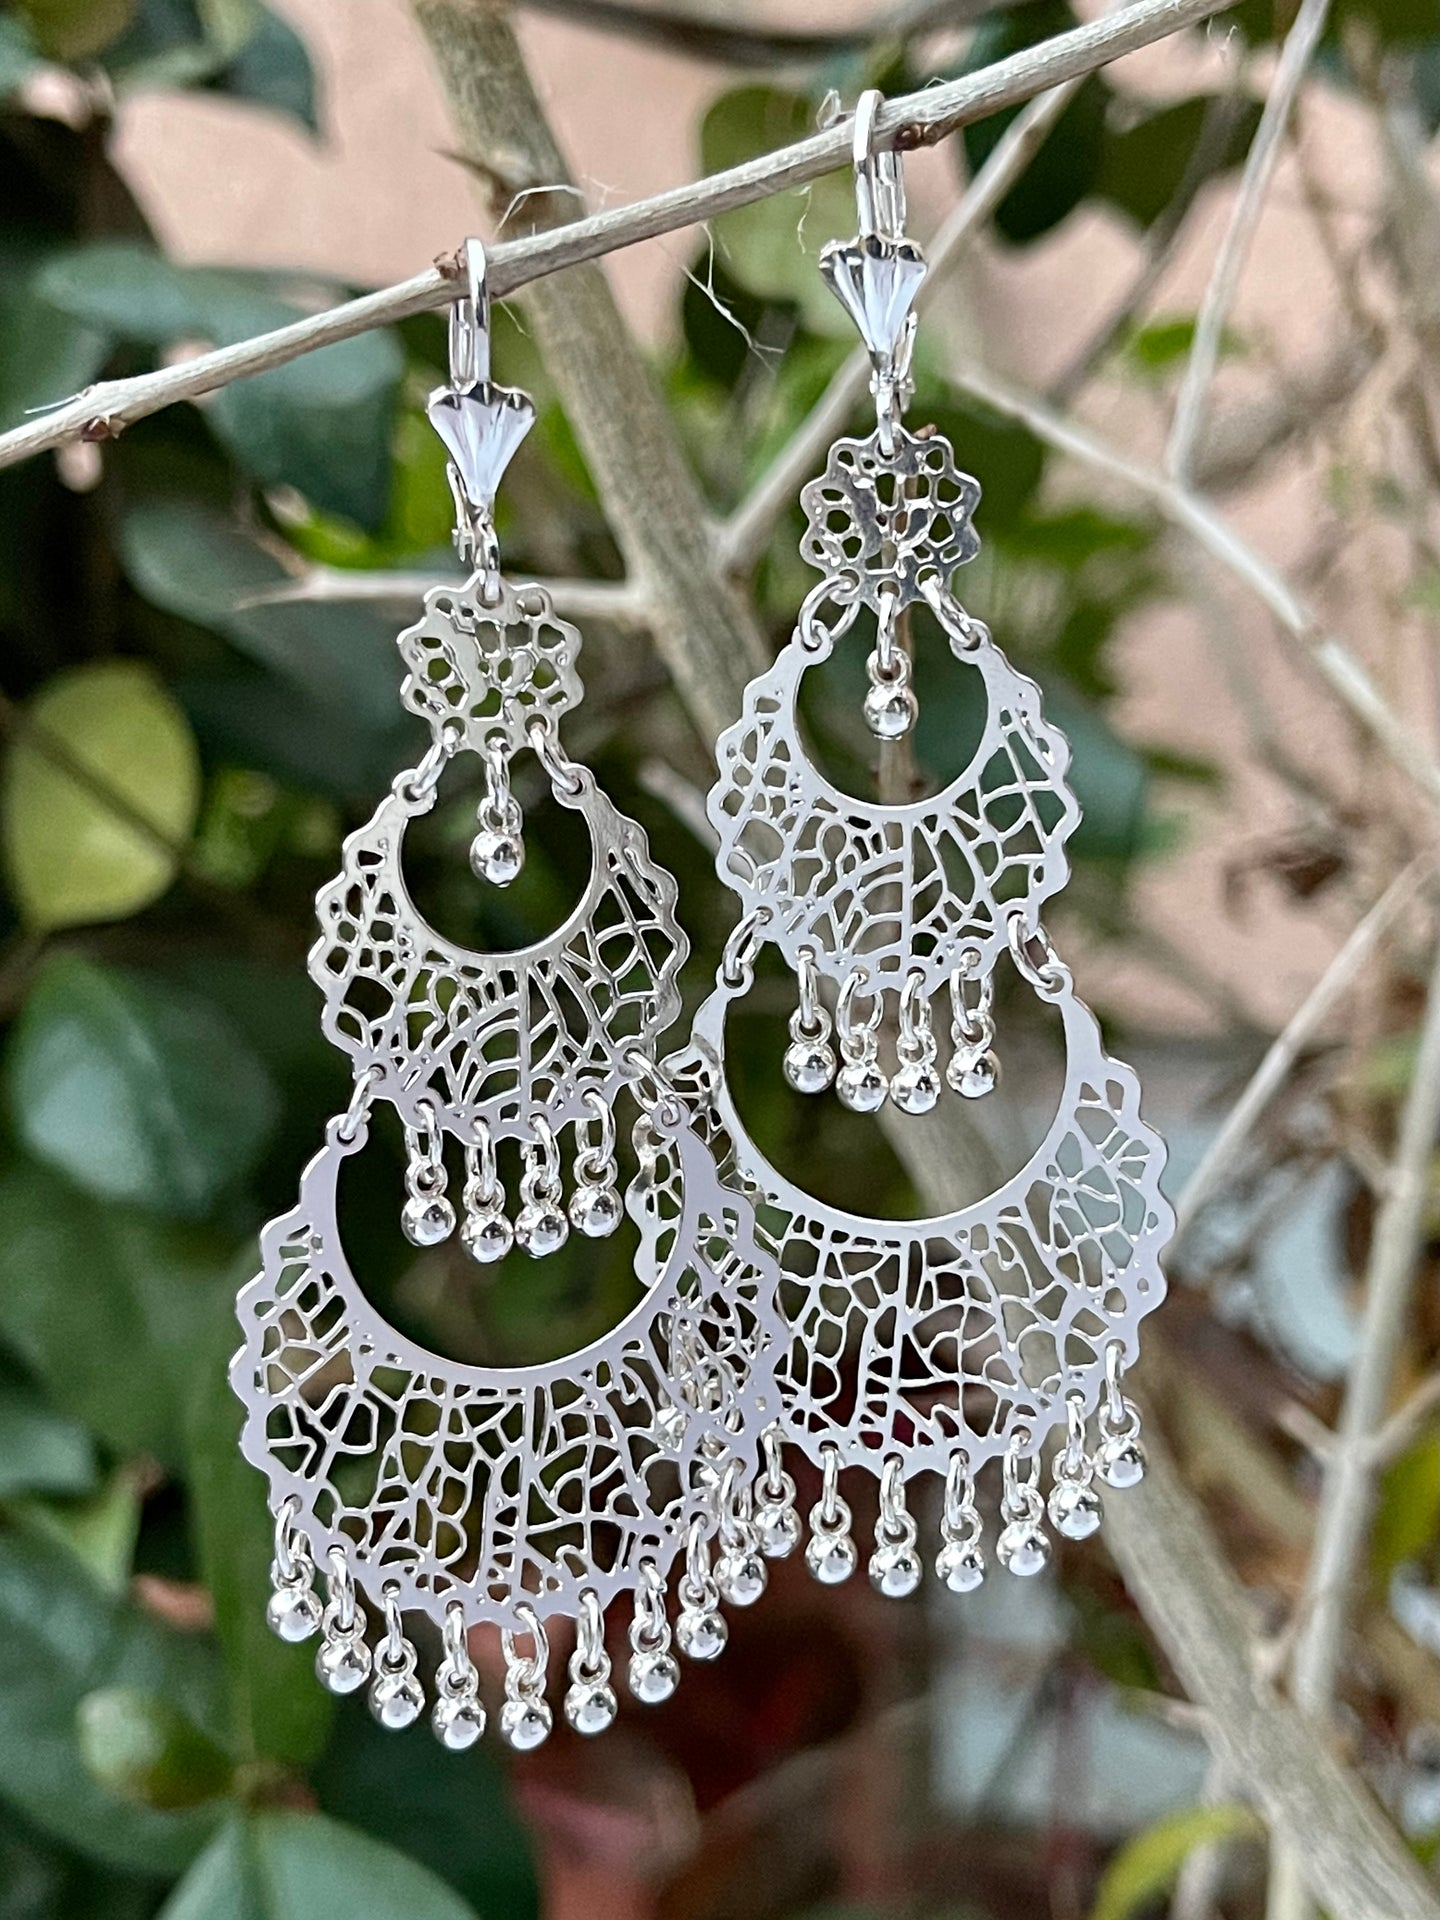 Abstract design chandelier style  dangle earrings in 14k white gold plating.